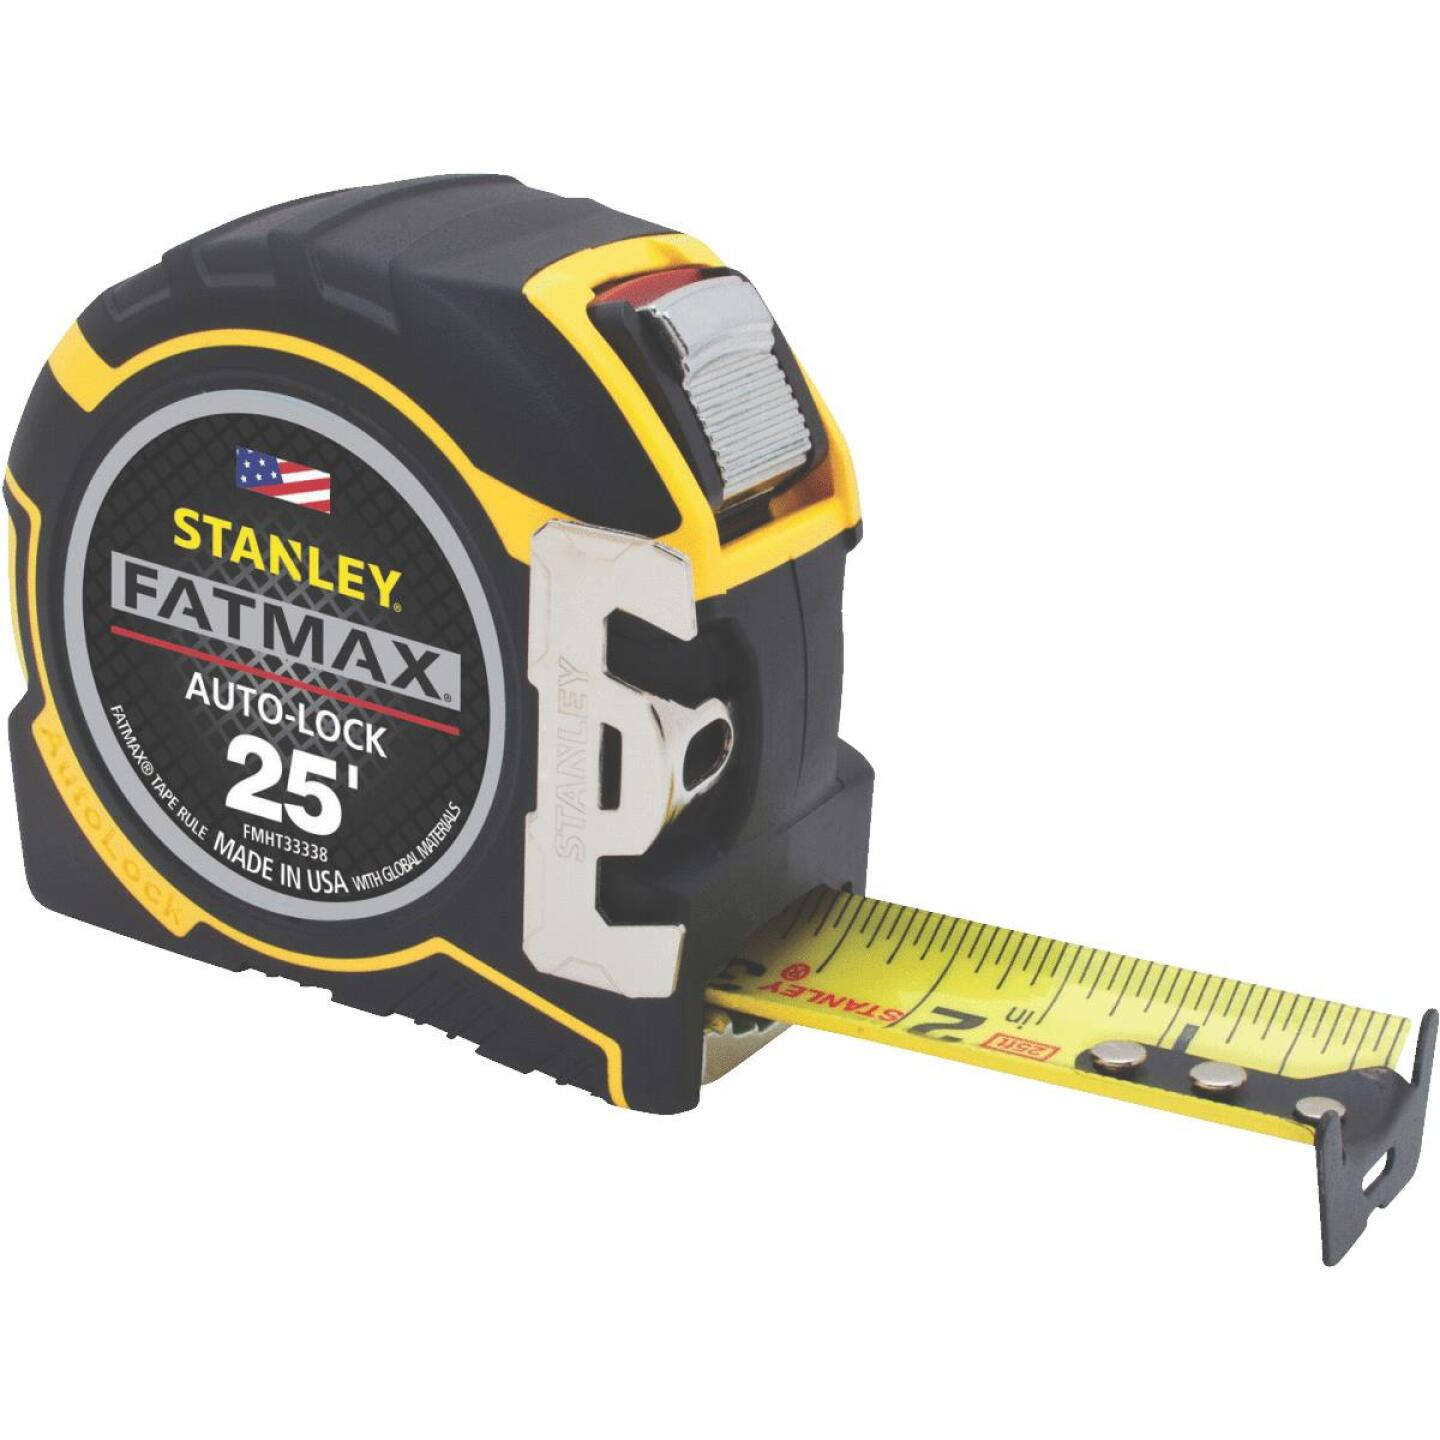 Stanley FatMax 25 Ft. Auto-Lock Tape Measure Image 1